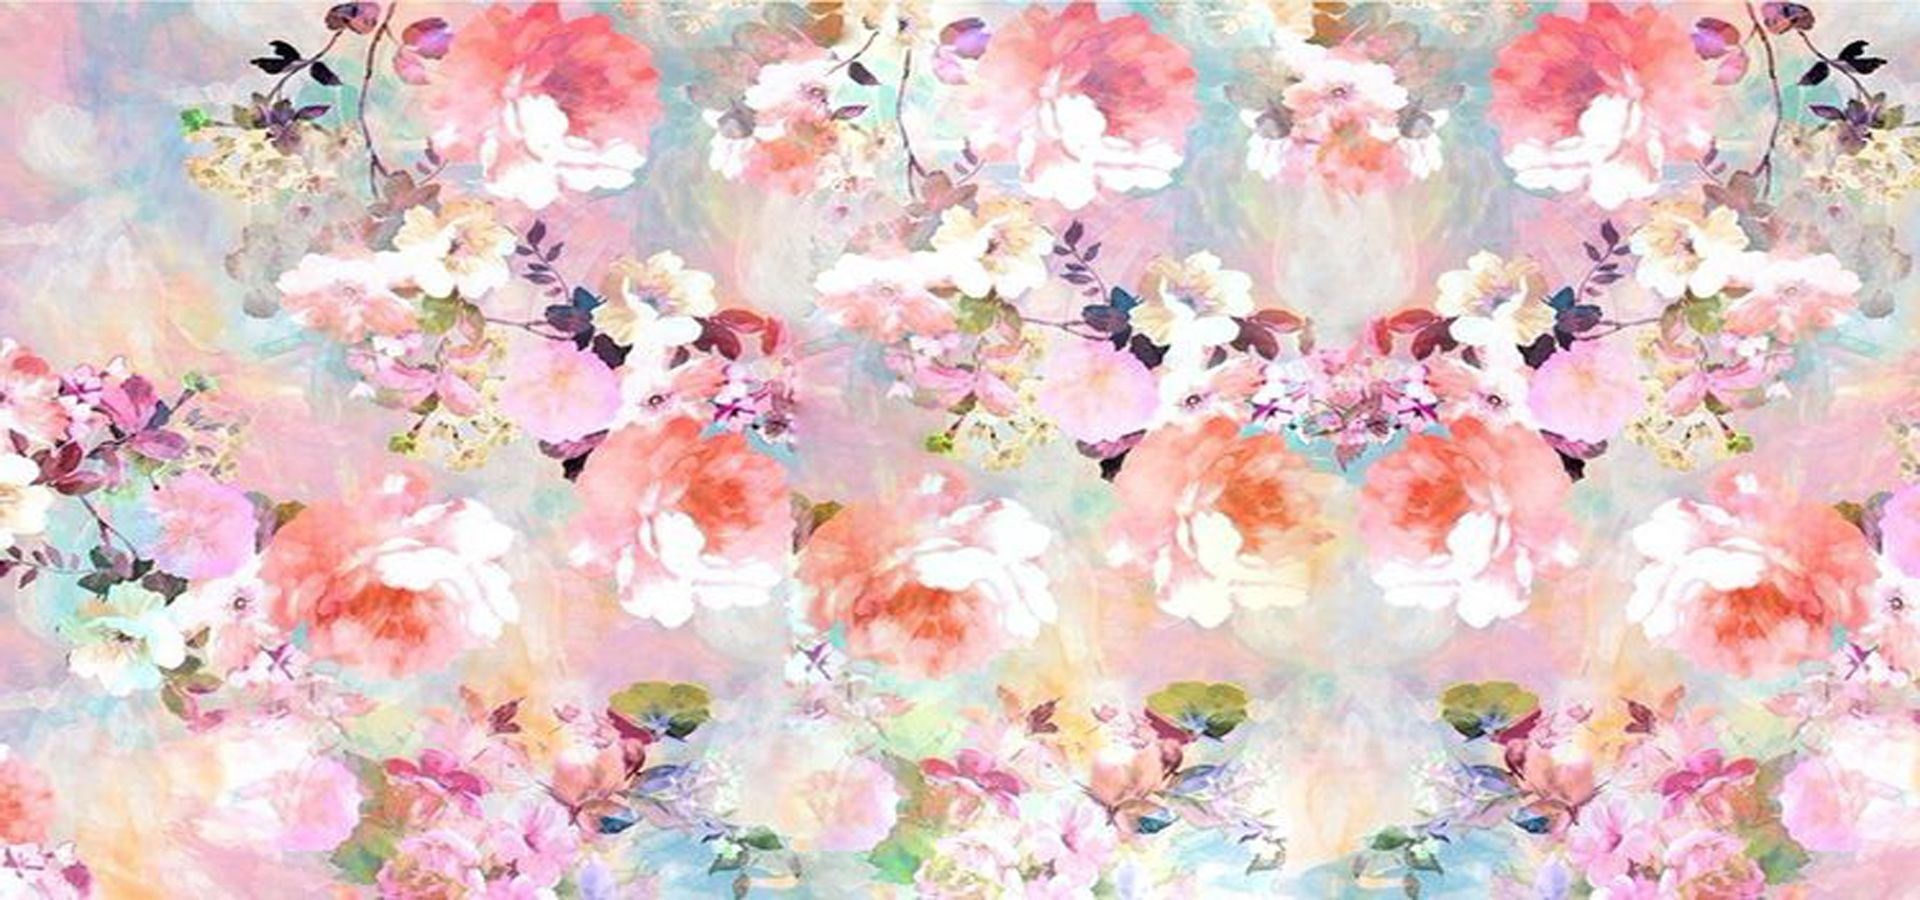 Watercolor Flowers Background Watercolor Flower Background Rose